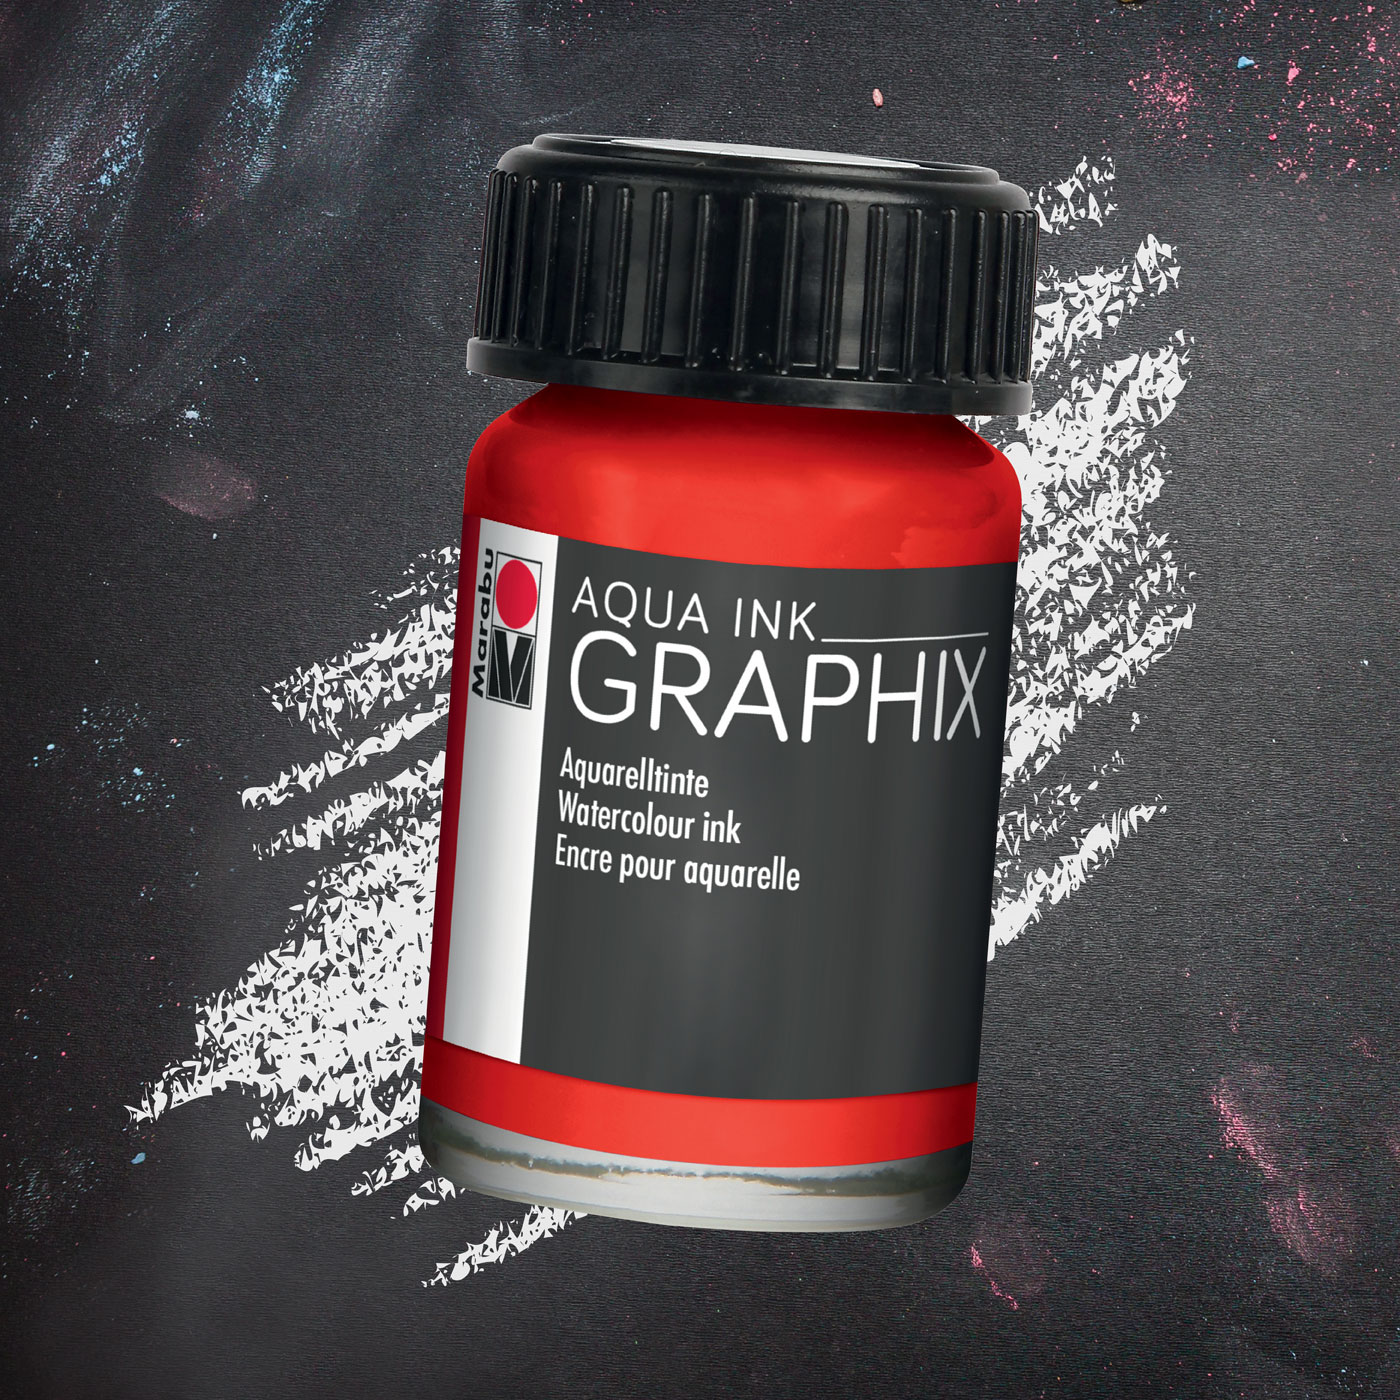 Back to the studio products from Graphix